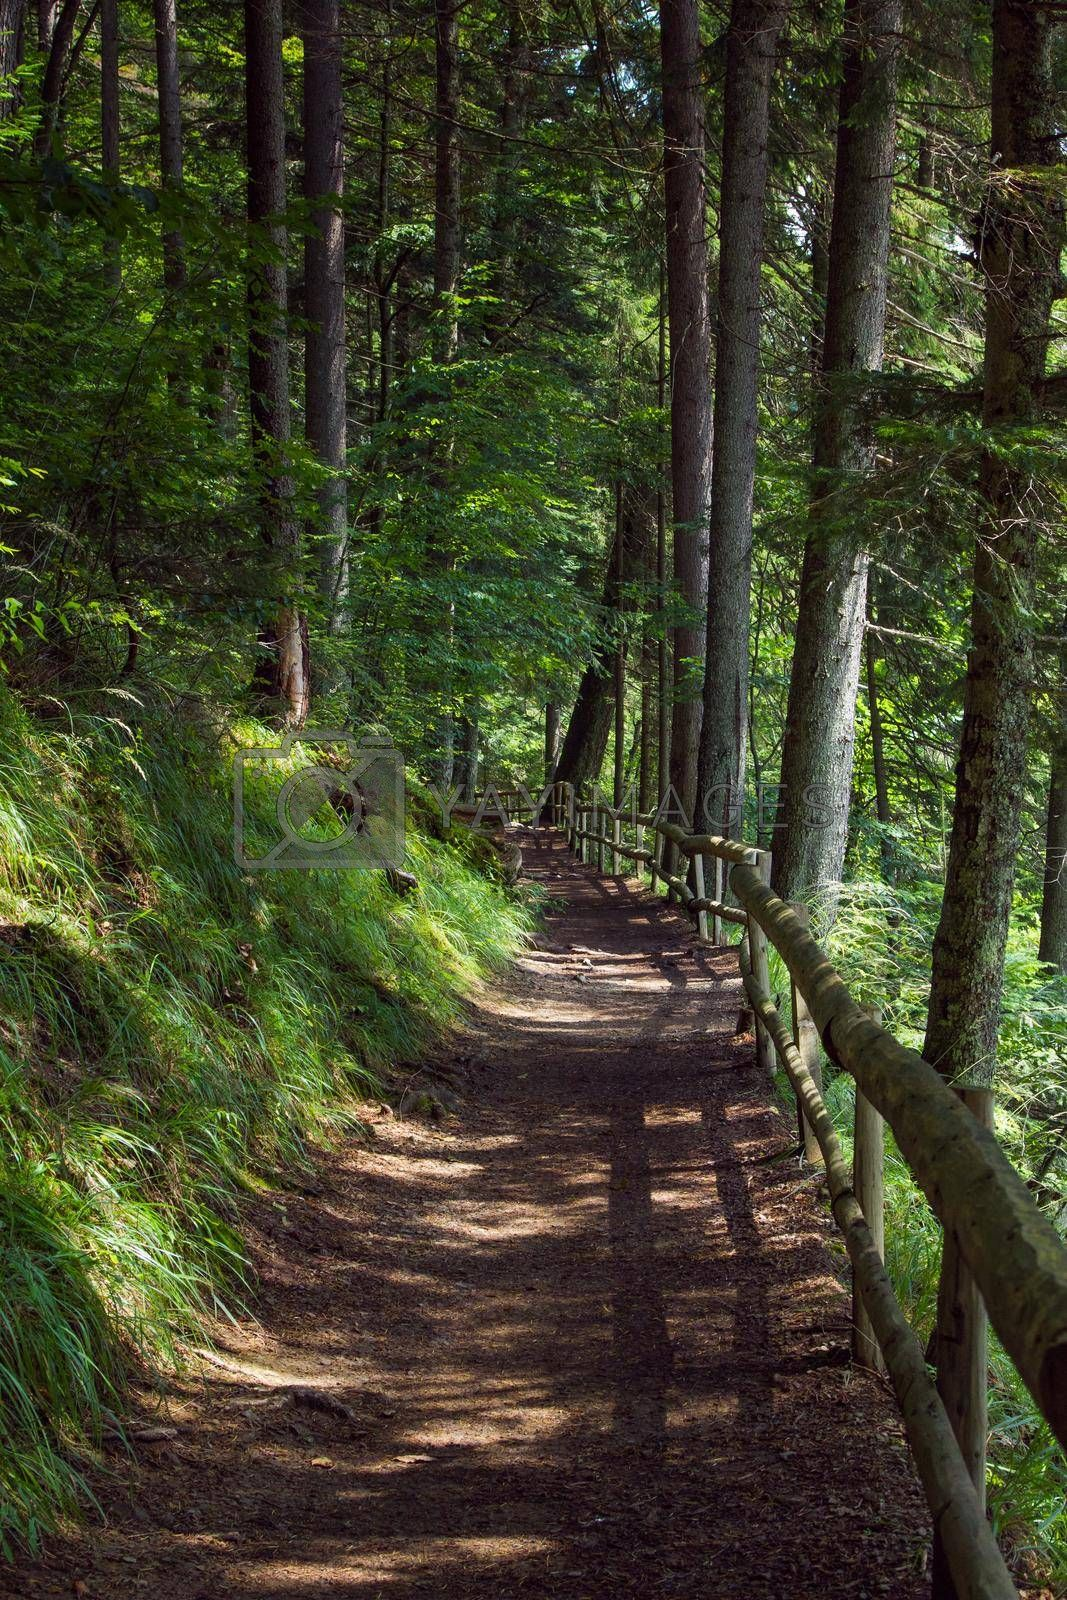 Royalty free image of A path through the forest. A path on the slope of the mountain. Natural background of green forest. by Jannetta